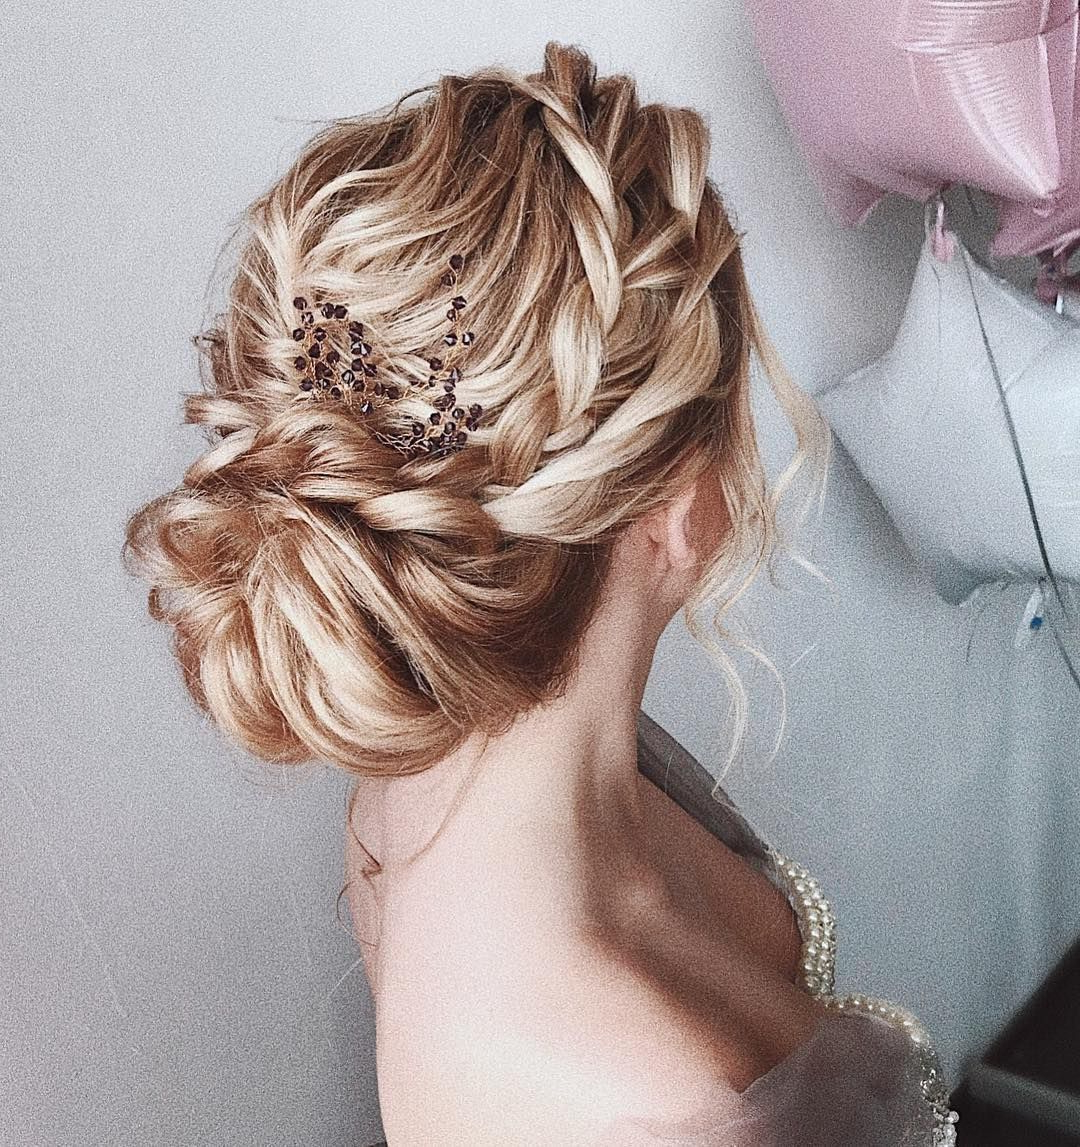 35 Gorgeous Updo Wedding Hairstyle Inspiration , Braids Inside Well Known Vintage Inspired Braided Updo Hairstyles (Gallery 2 of 20)